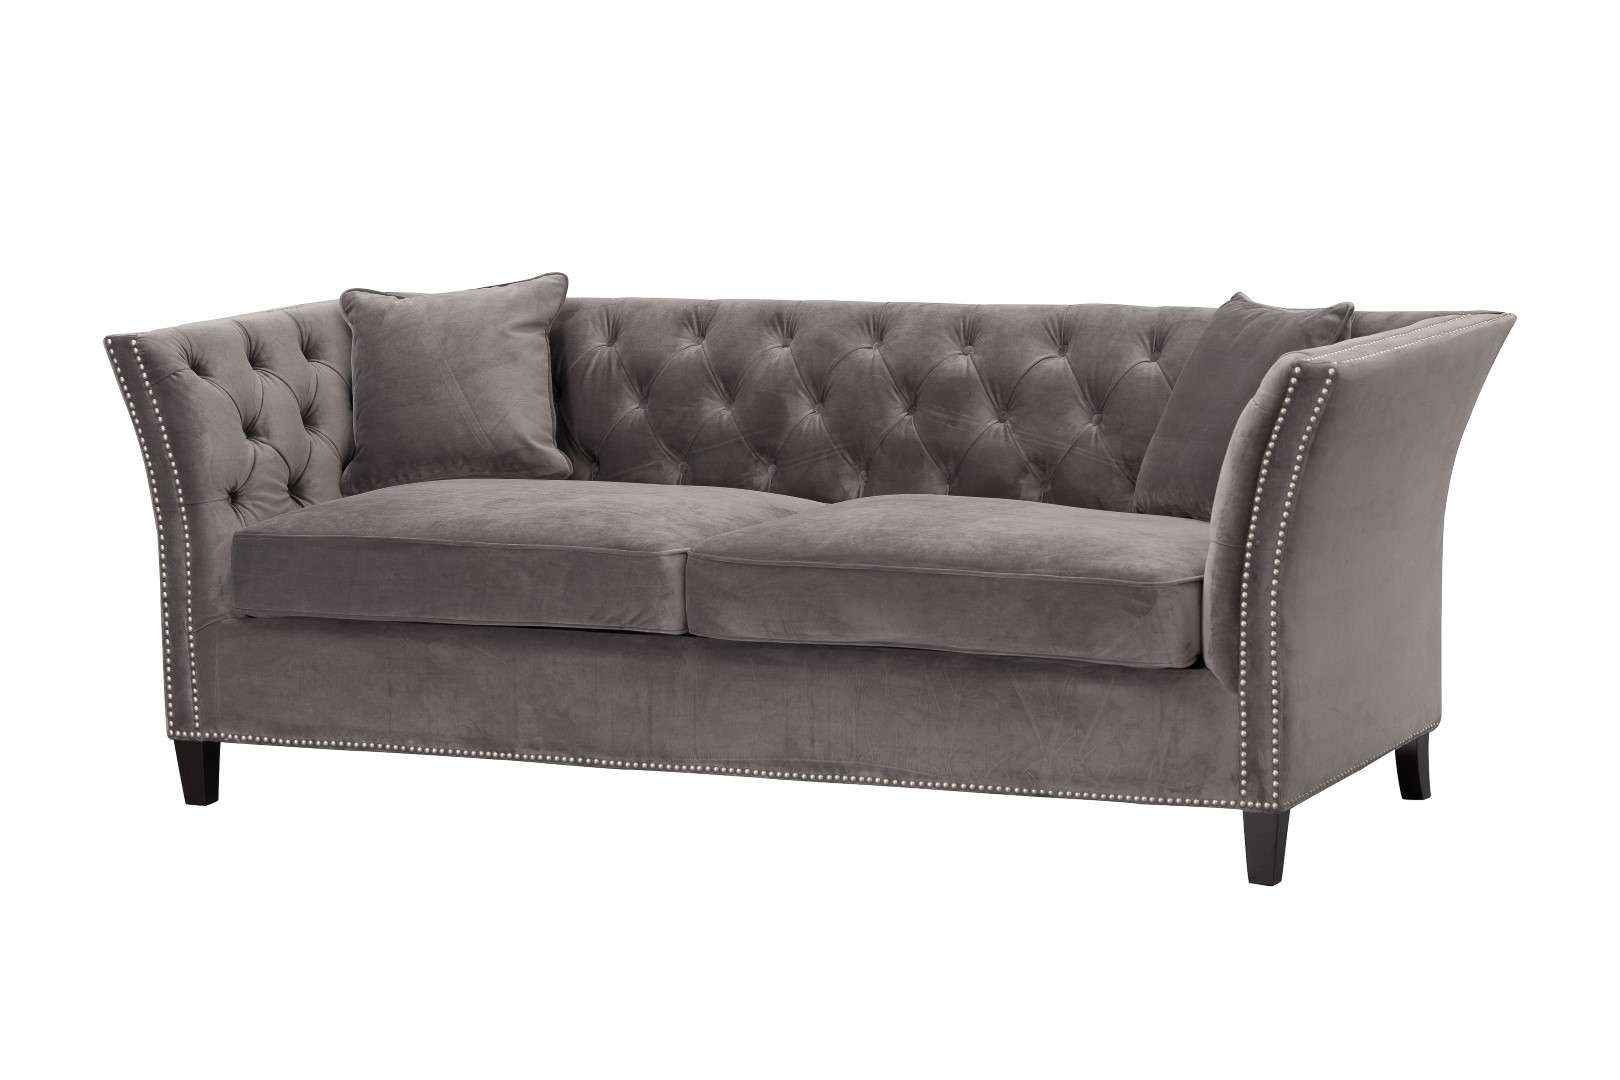 Sofa Chesterfield Modern Velvet Dark Grey 3-Sitzer, 225x87x82cm